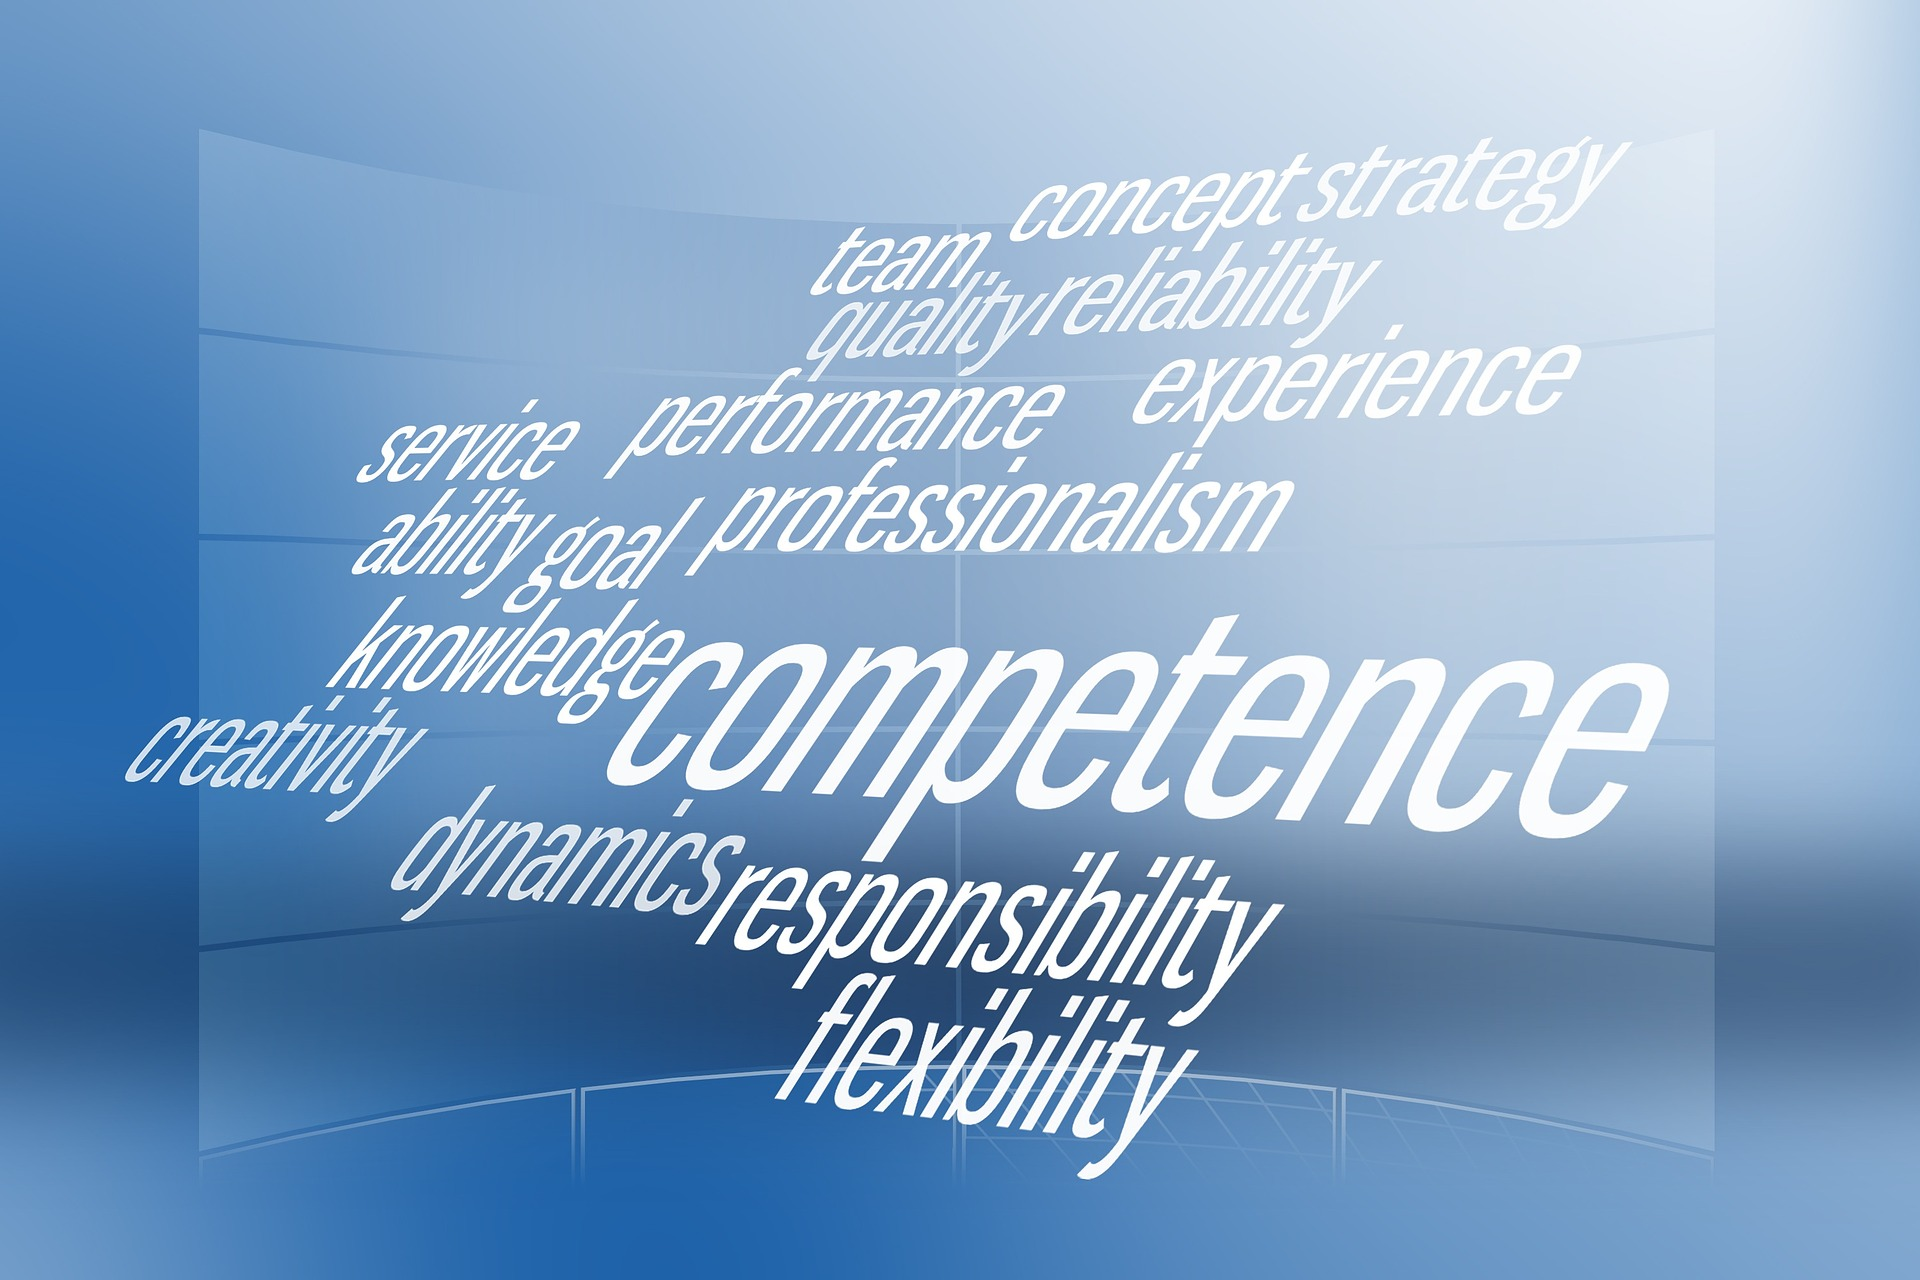 competence-940613_1920